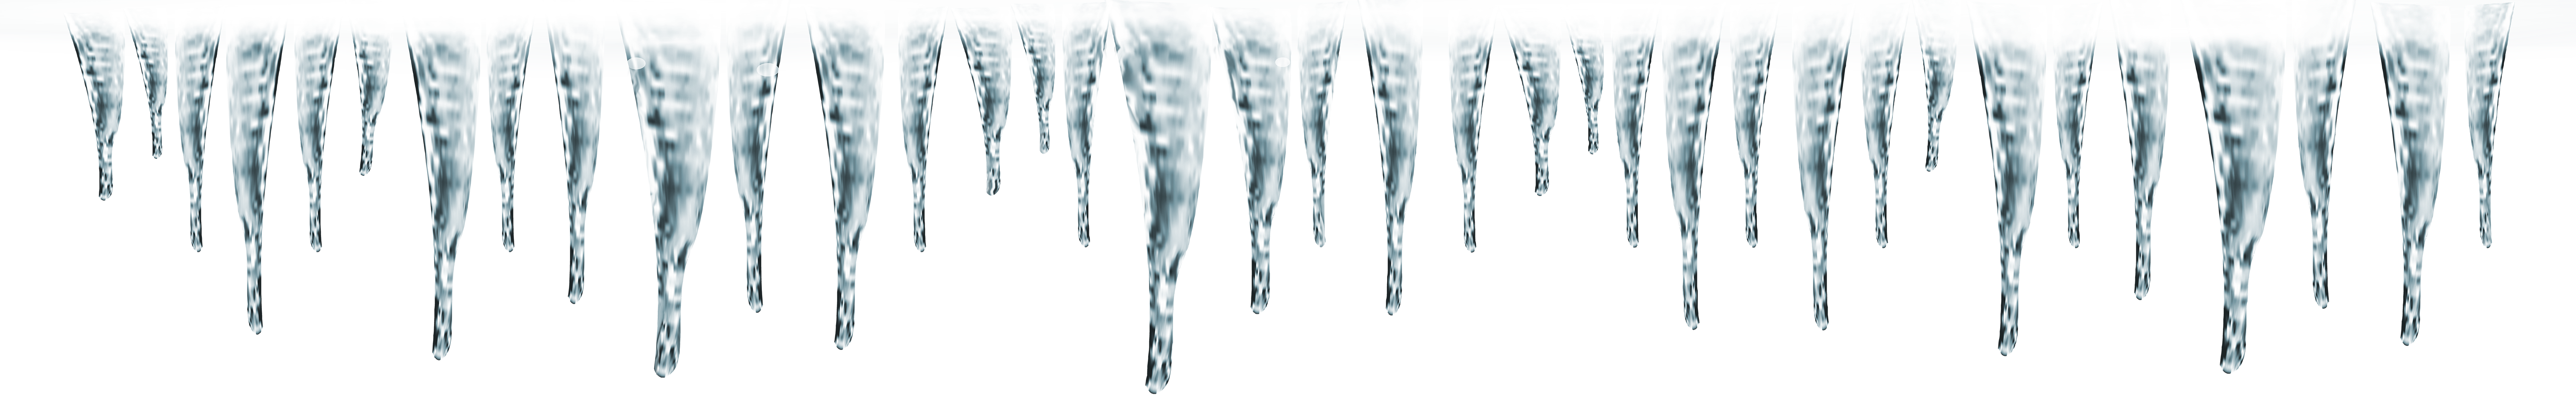 Icicles png clip art. Icicle clipart blue